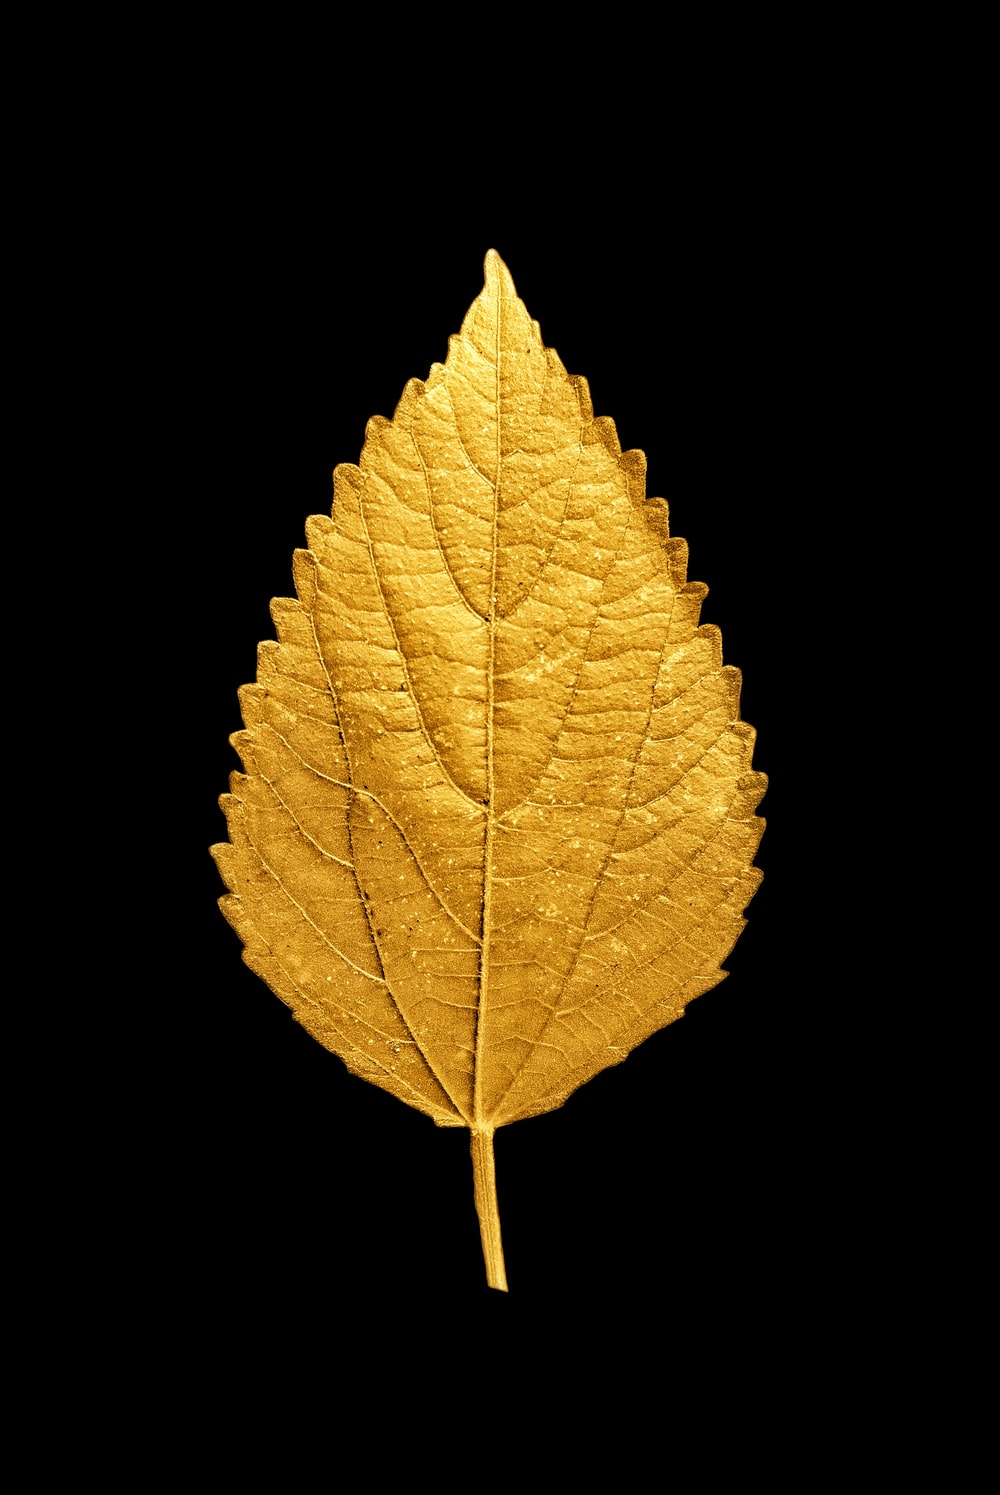 yellow and brown leaf illustration